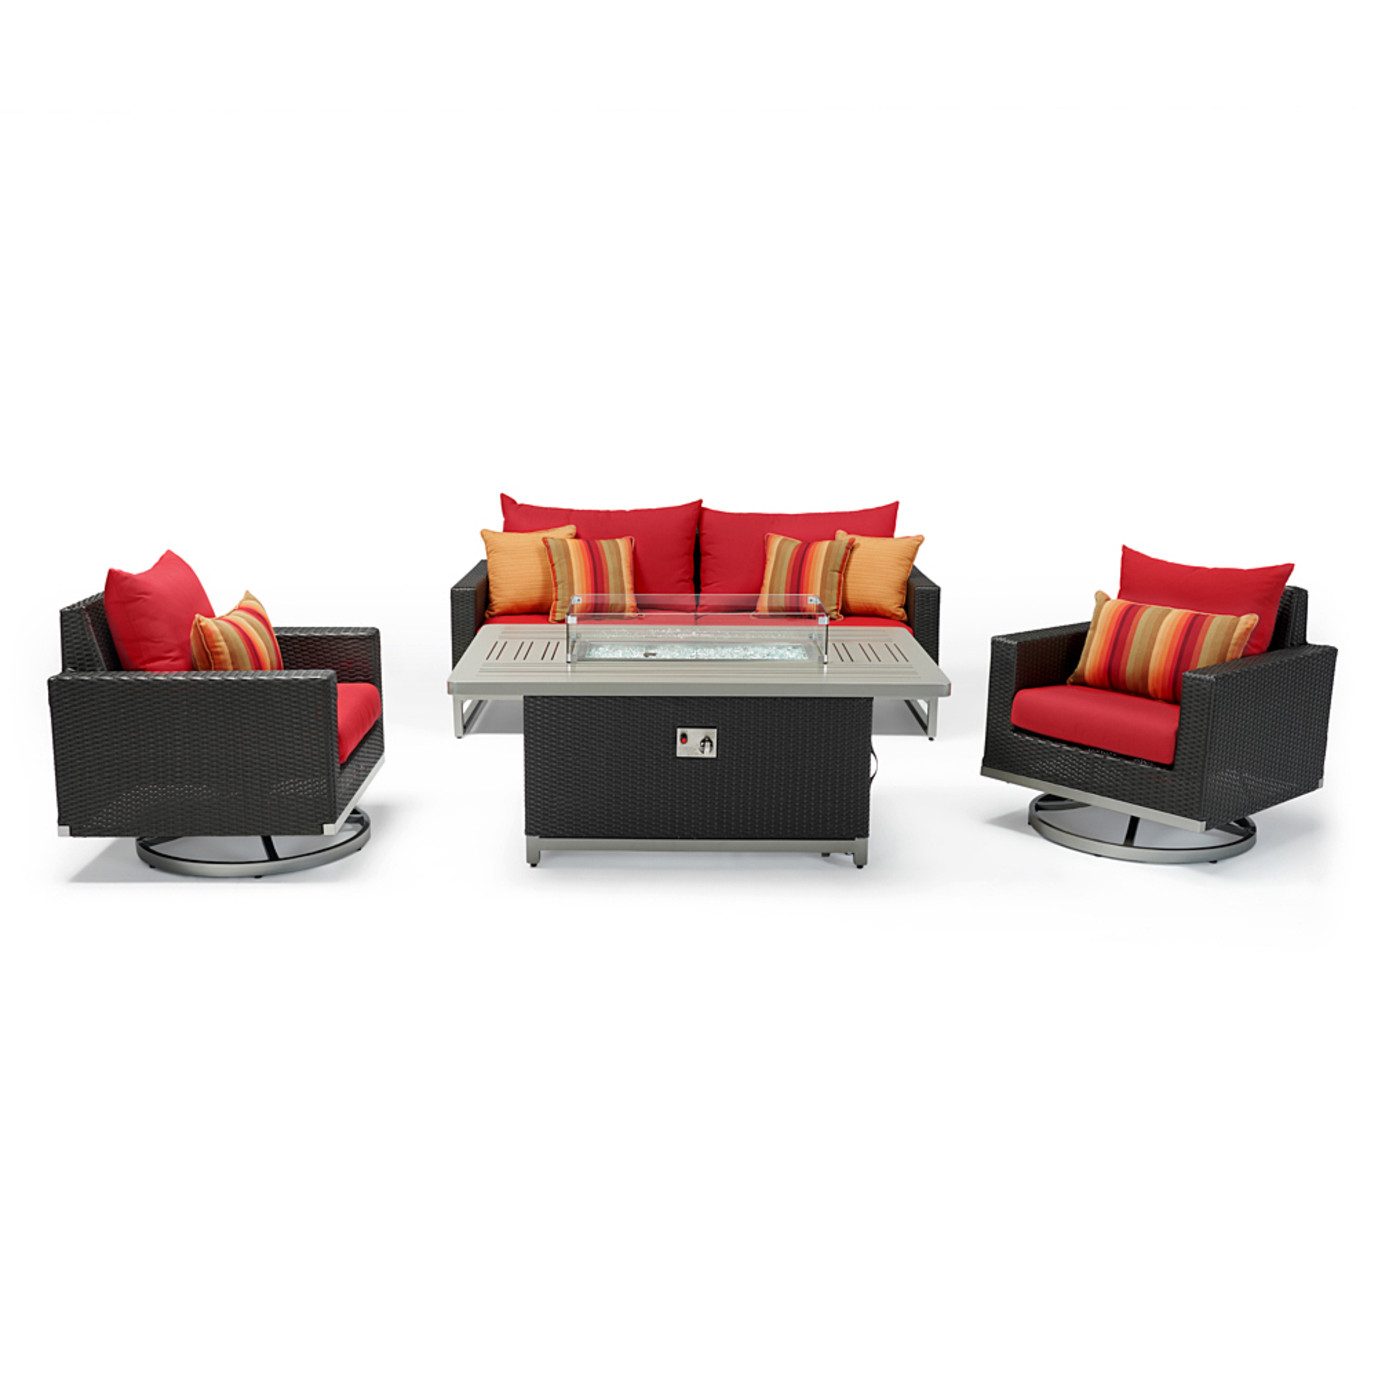 Milo™ Espresso 4 Piece Motion Fire Set - Sunset Red